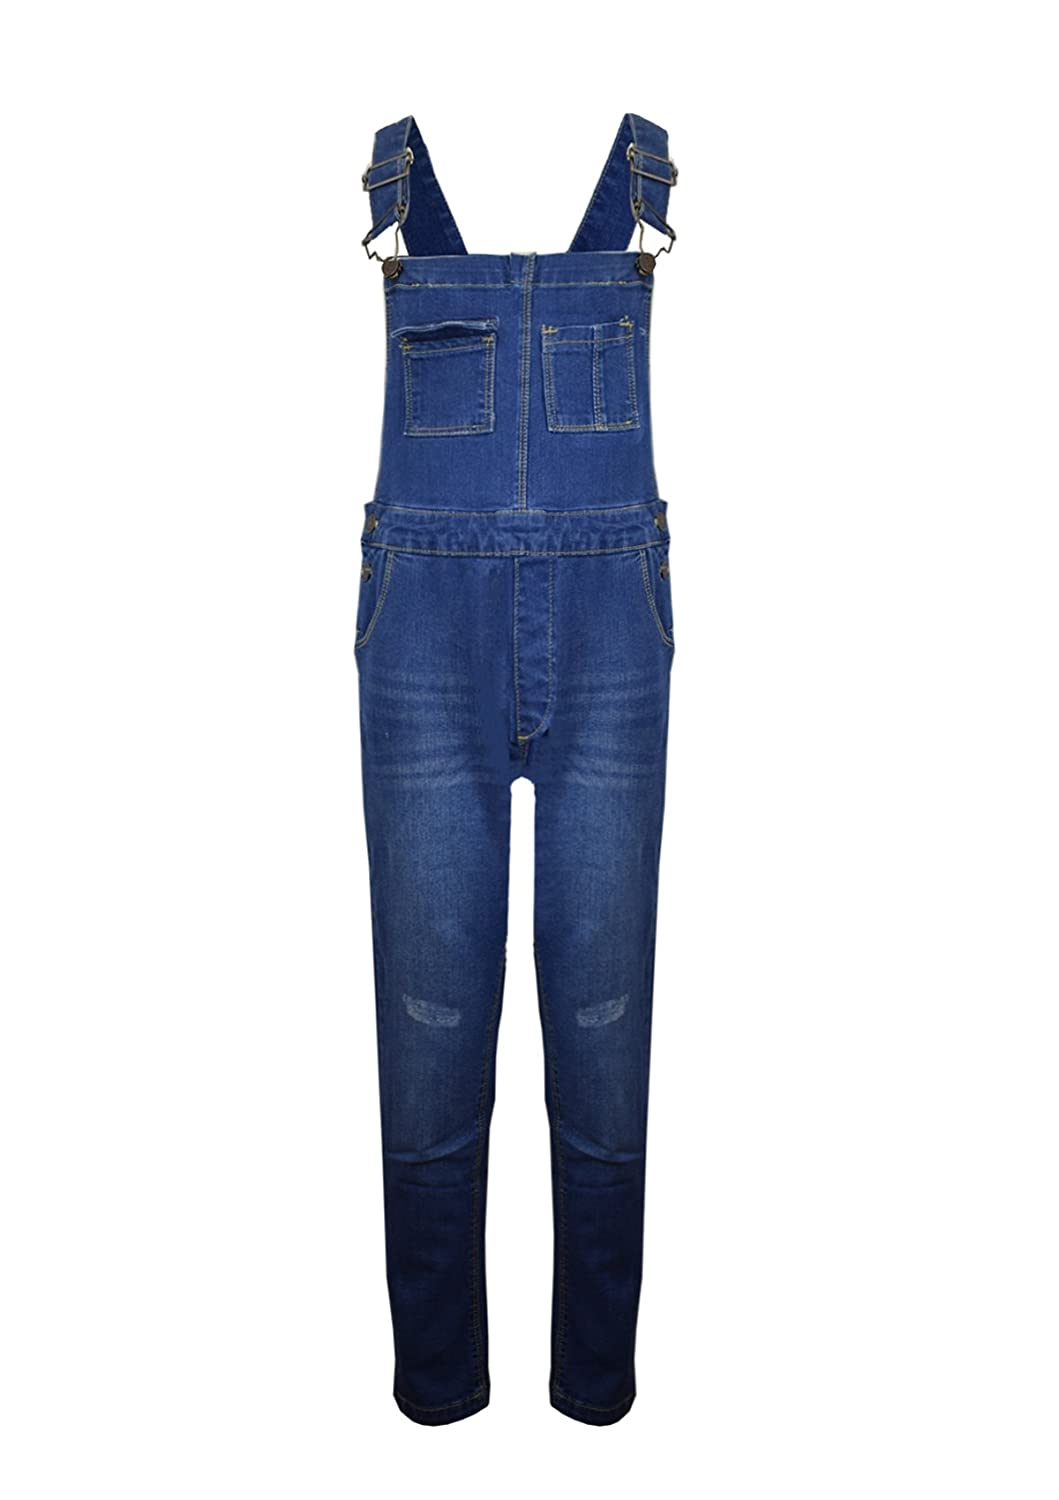 Vanilla Inc New Kids Girls Boys Denim Childrens Stretch Dark Wash Dungarees Playsuit Jumpsuit Long Dress UK Jeans Bib Overalls Pinafore Age 7-13